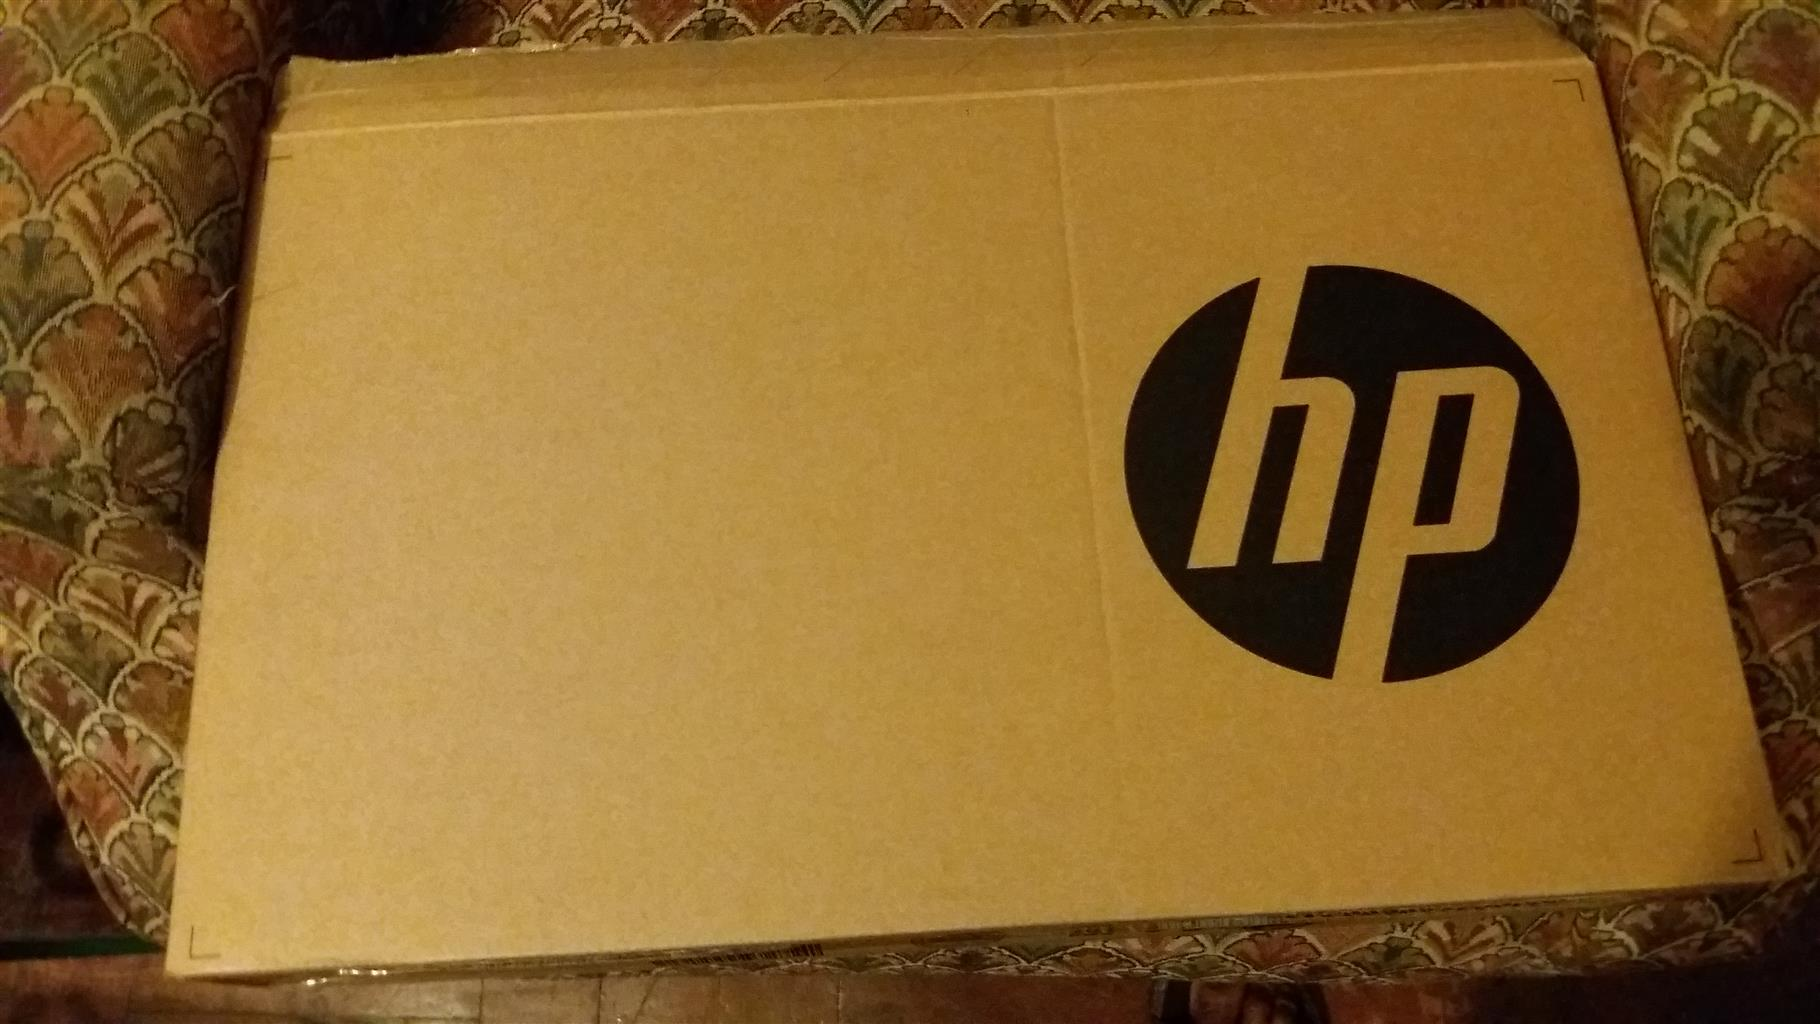 Brand new  Demo Hp i5 Notebook pc 5th generation intel core i5